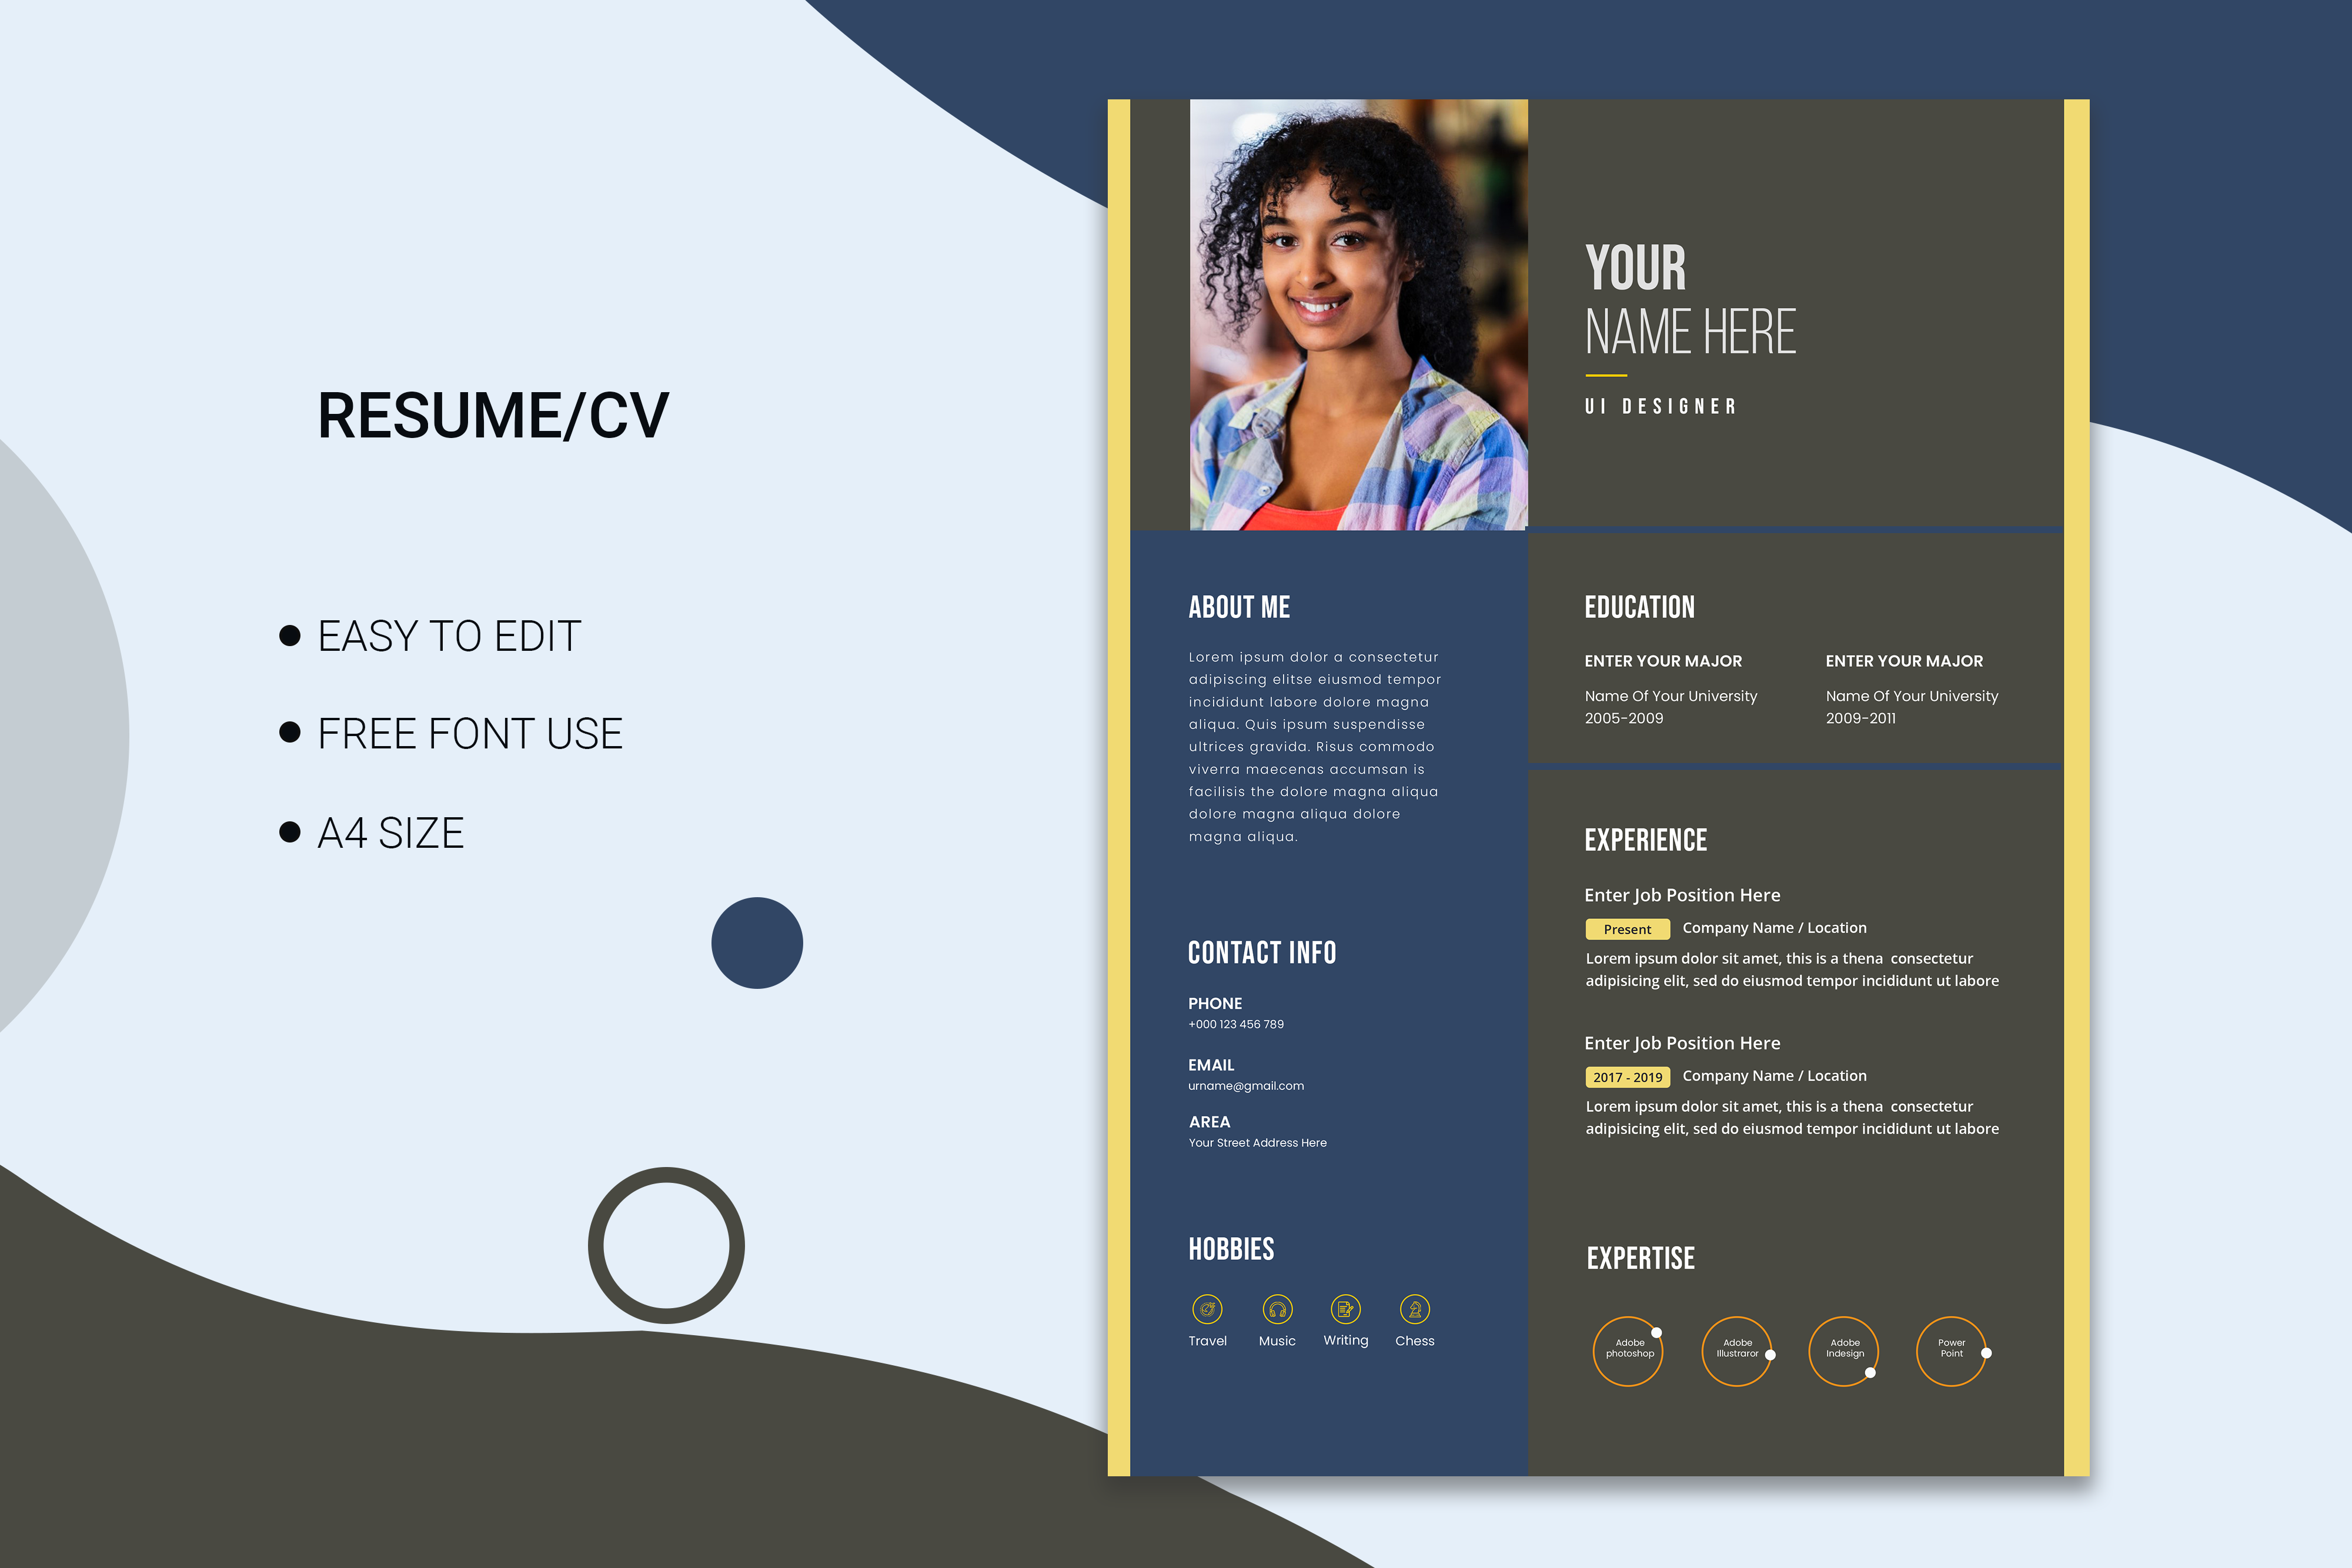 Minimalist cv template with photo space Free Vector